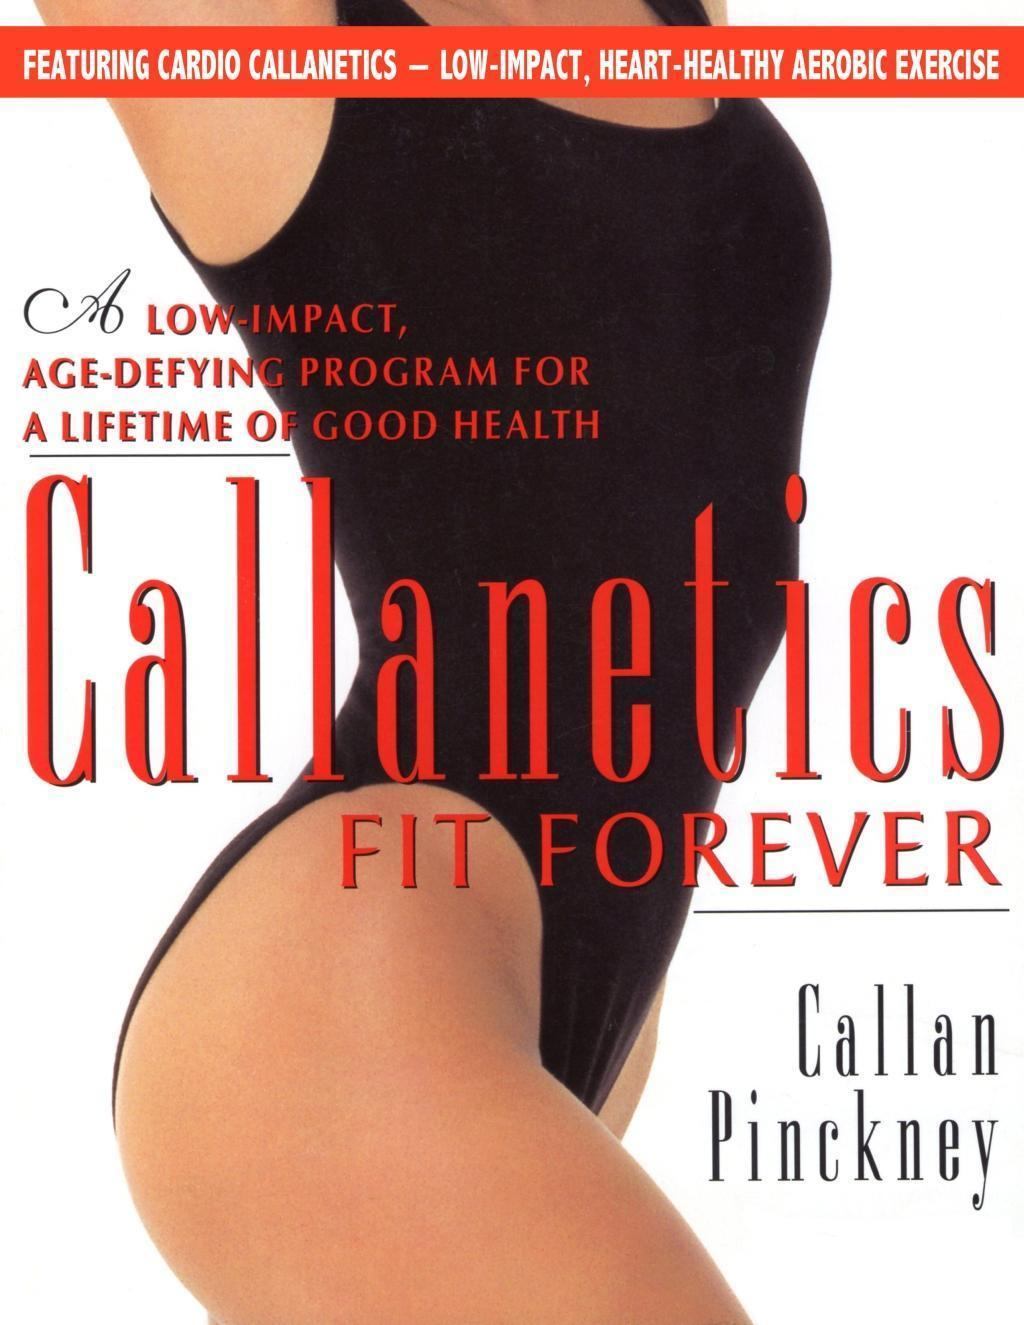 Callanetics Fit Forever